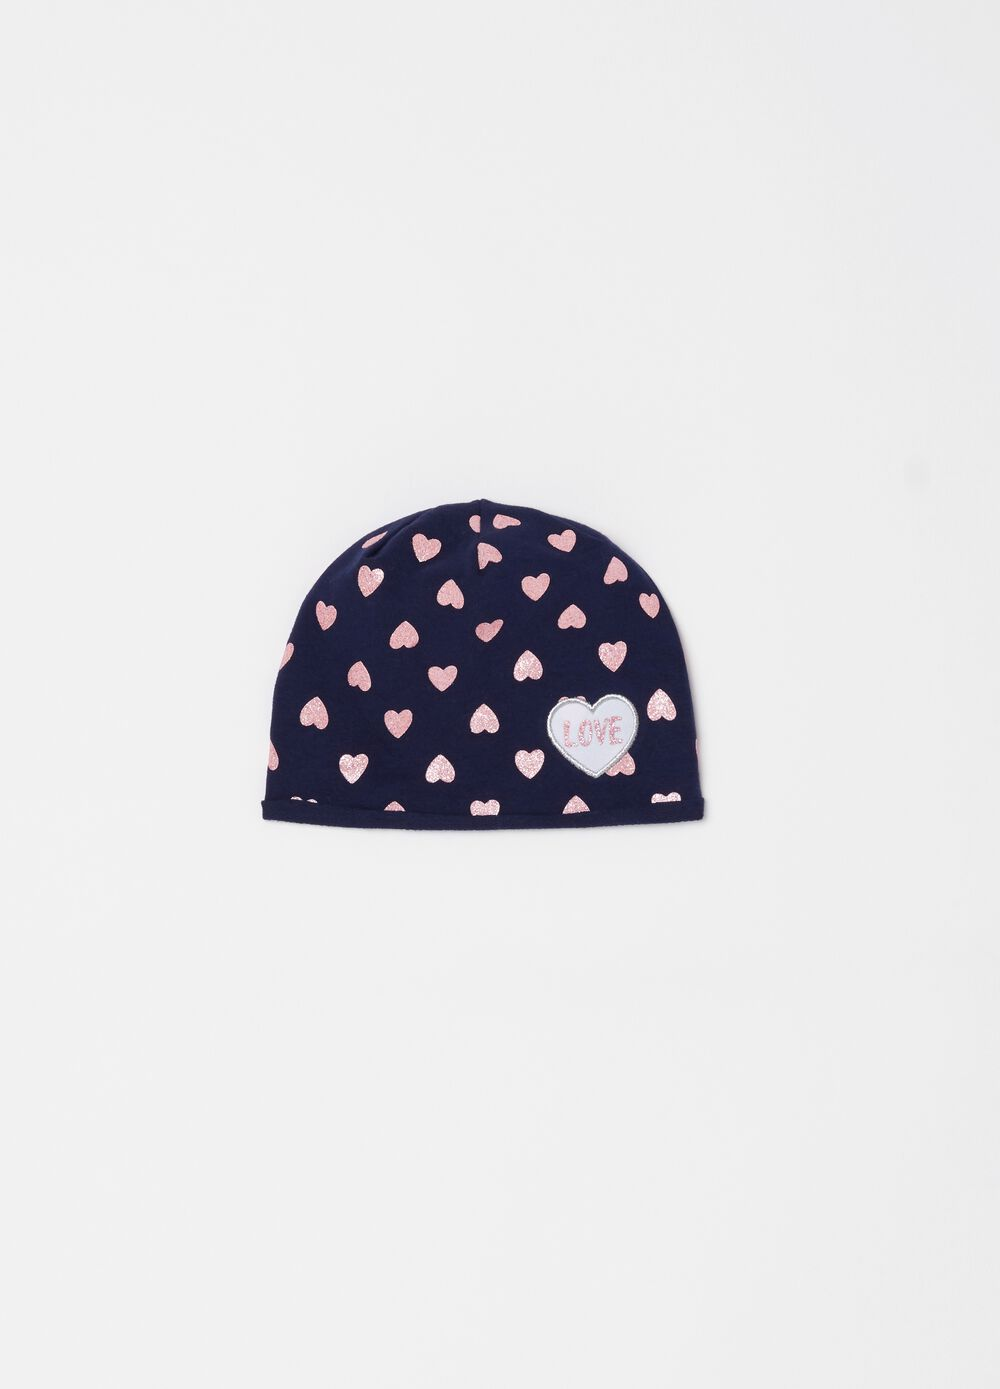 Hat with glitter heart pattern